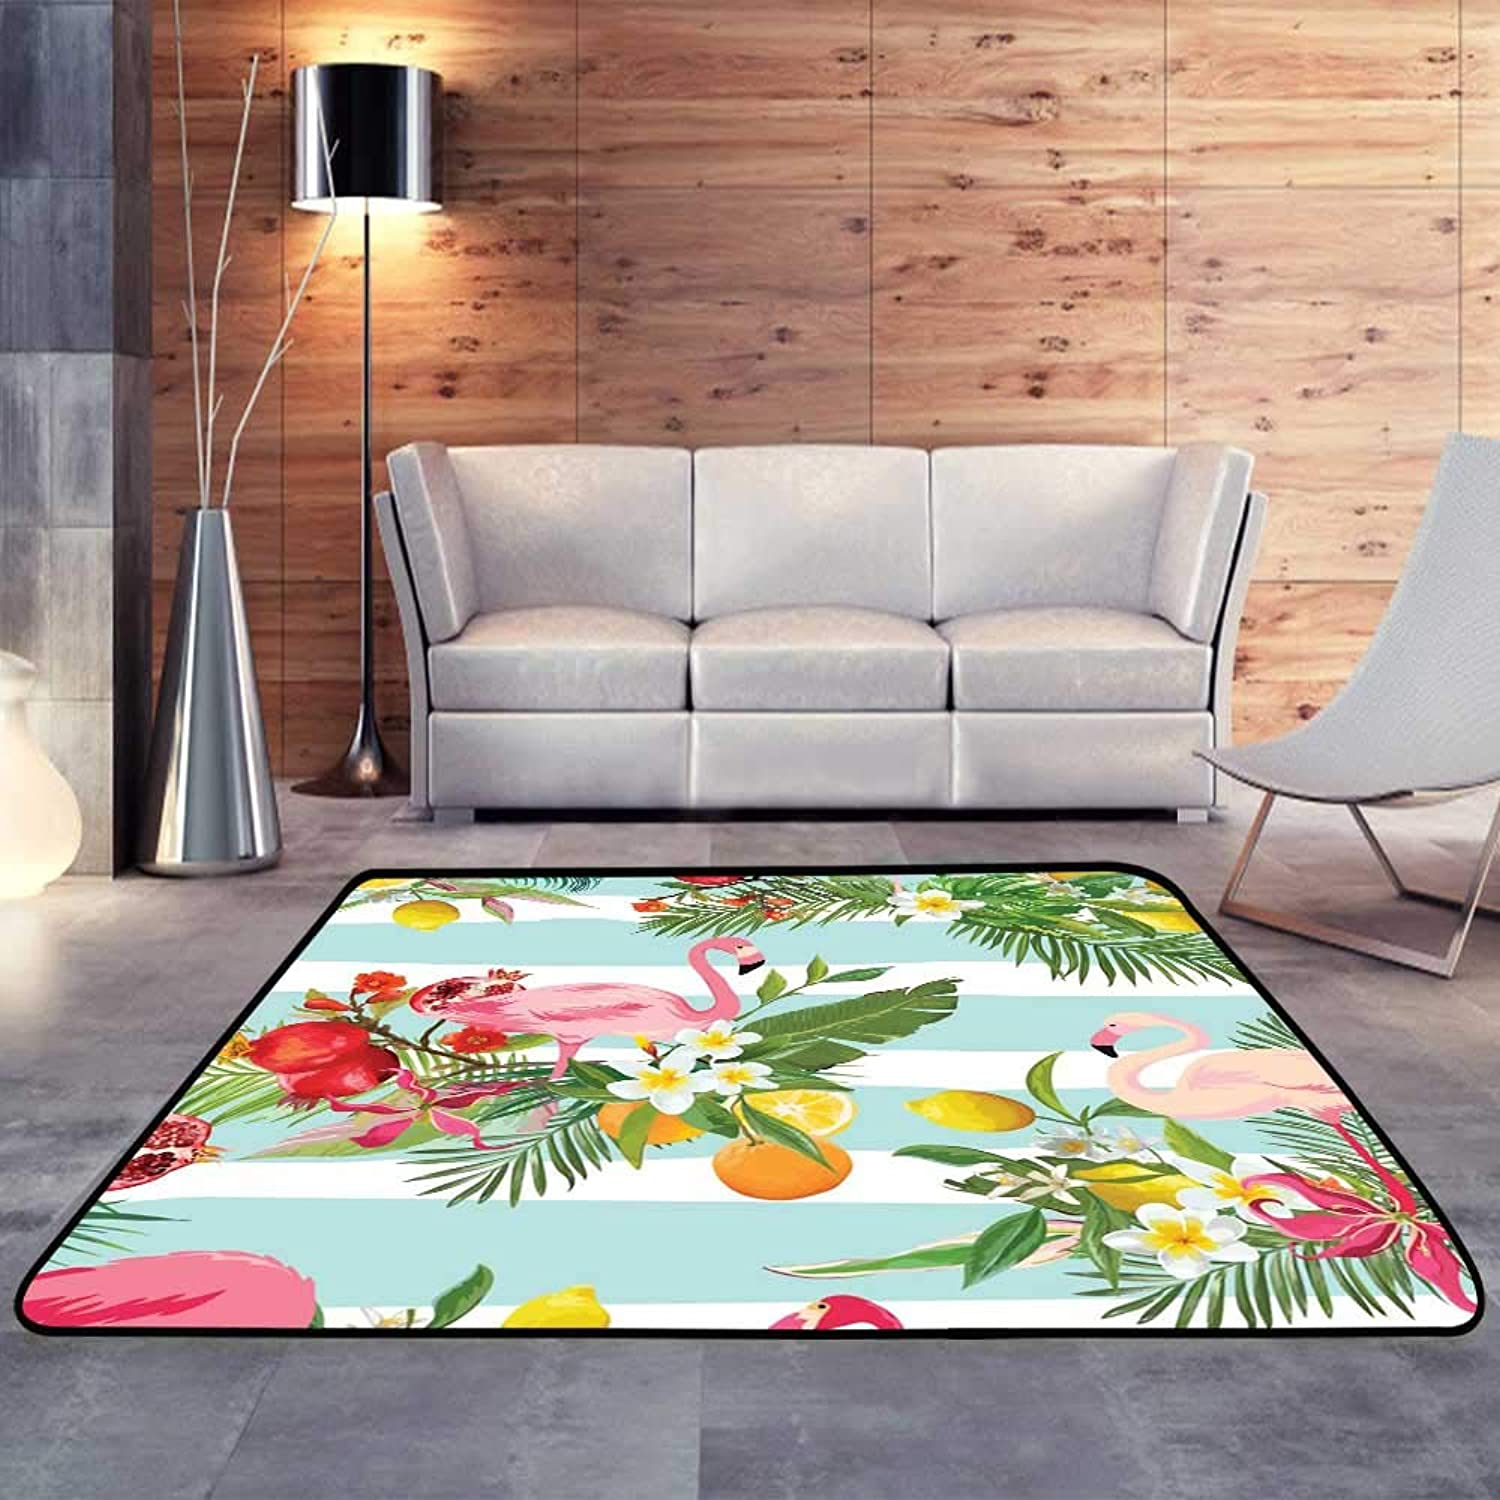 Kids rugsTropical Fruits, Flowers and Flamingo Birds.W 47  x L59 Slip-Resistant Washable Entrance Doormat